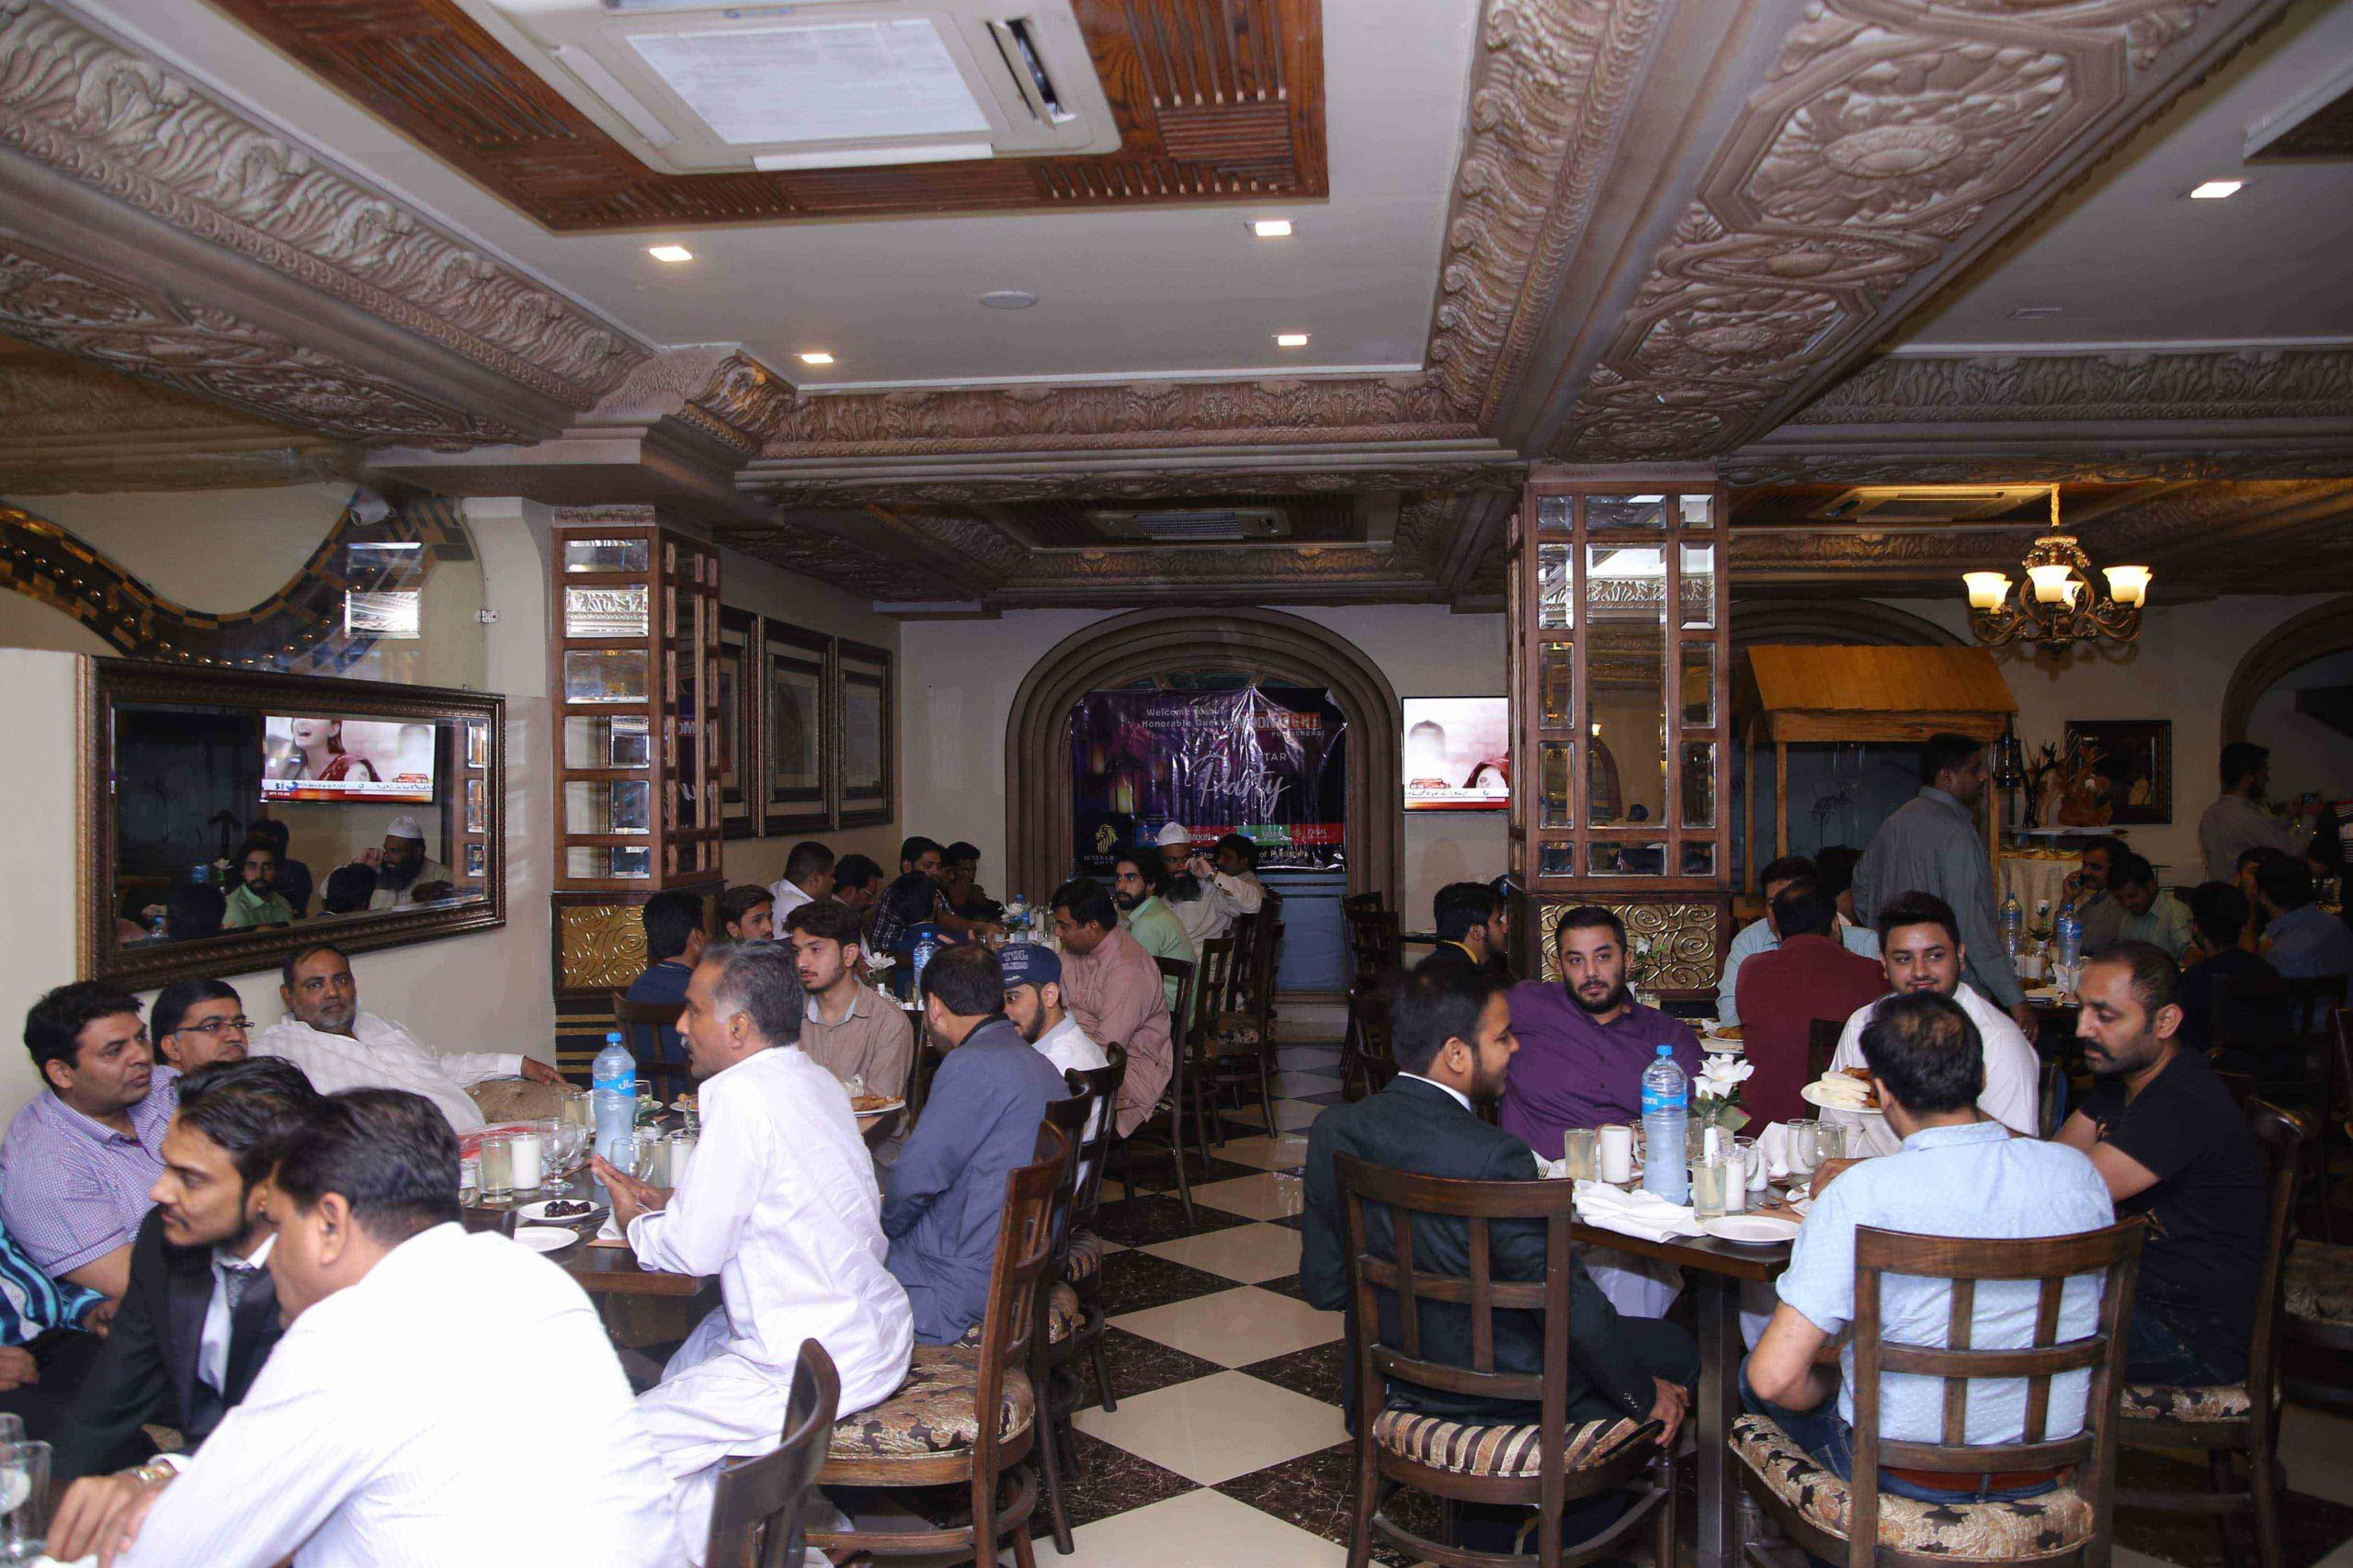 STAFF_ANNUAL_DINNER_&_IFTAR_PARTTY_39